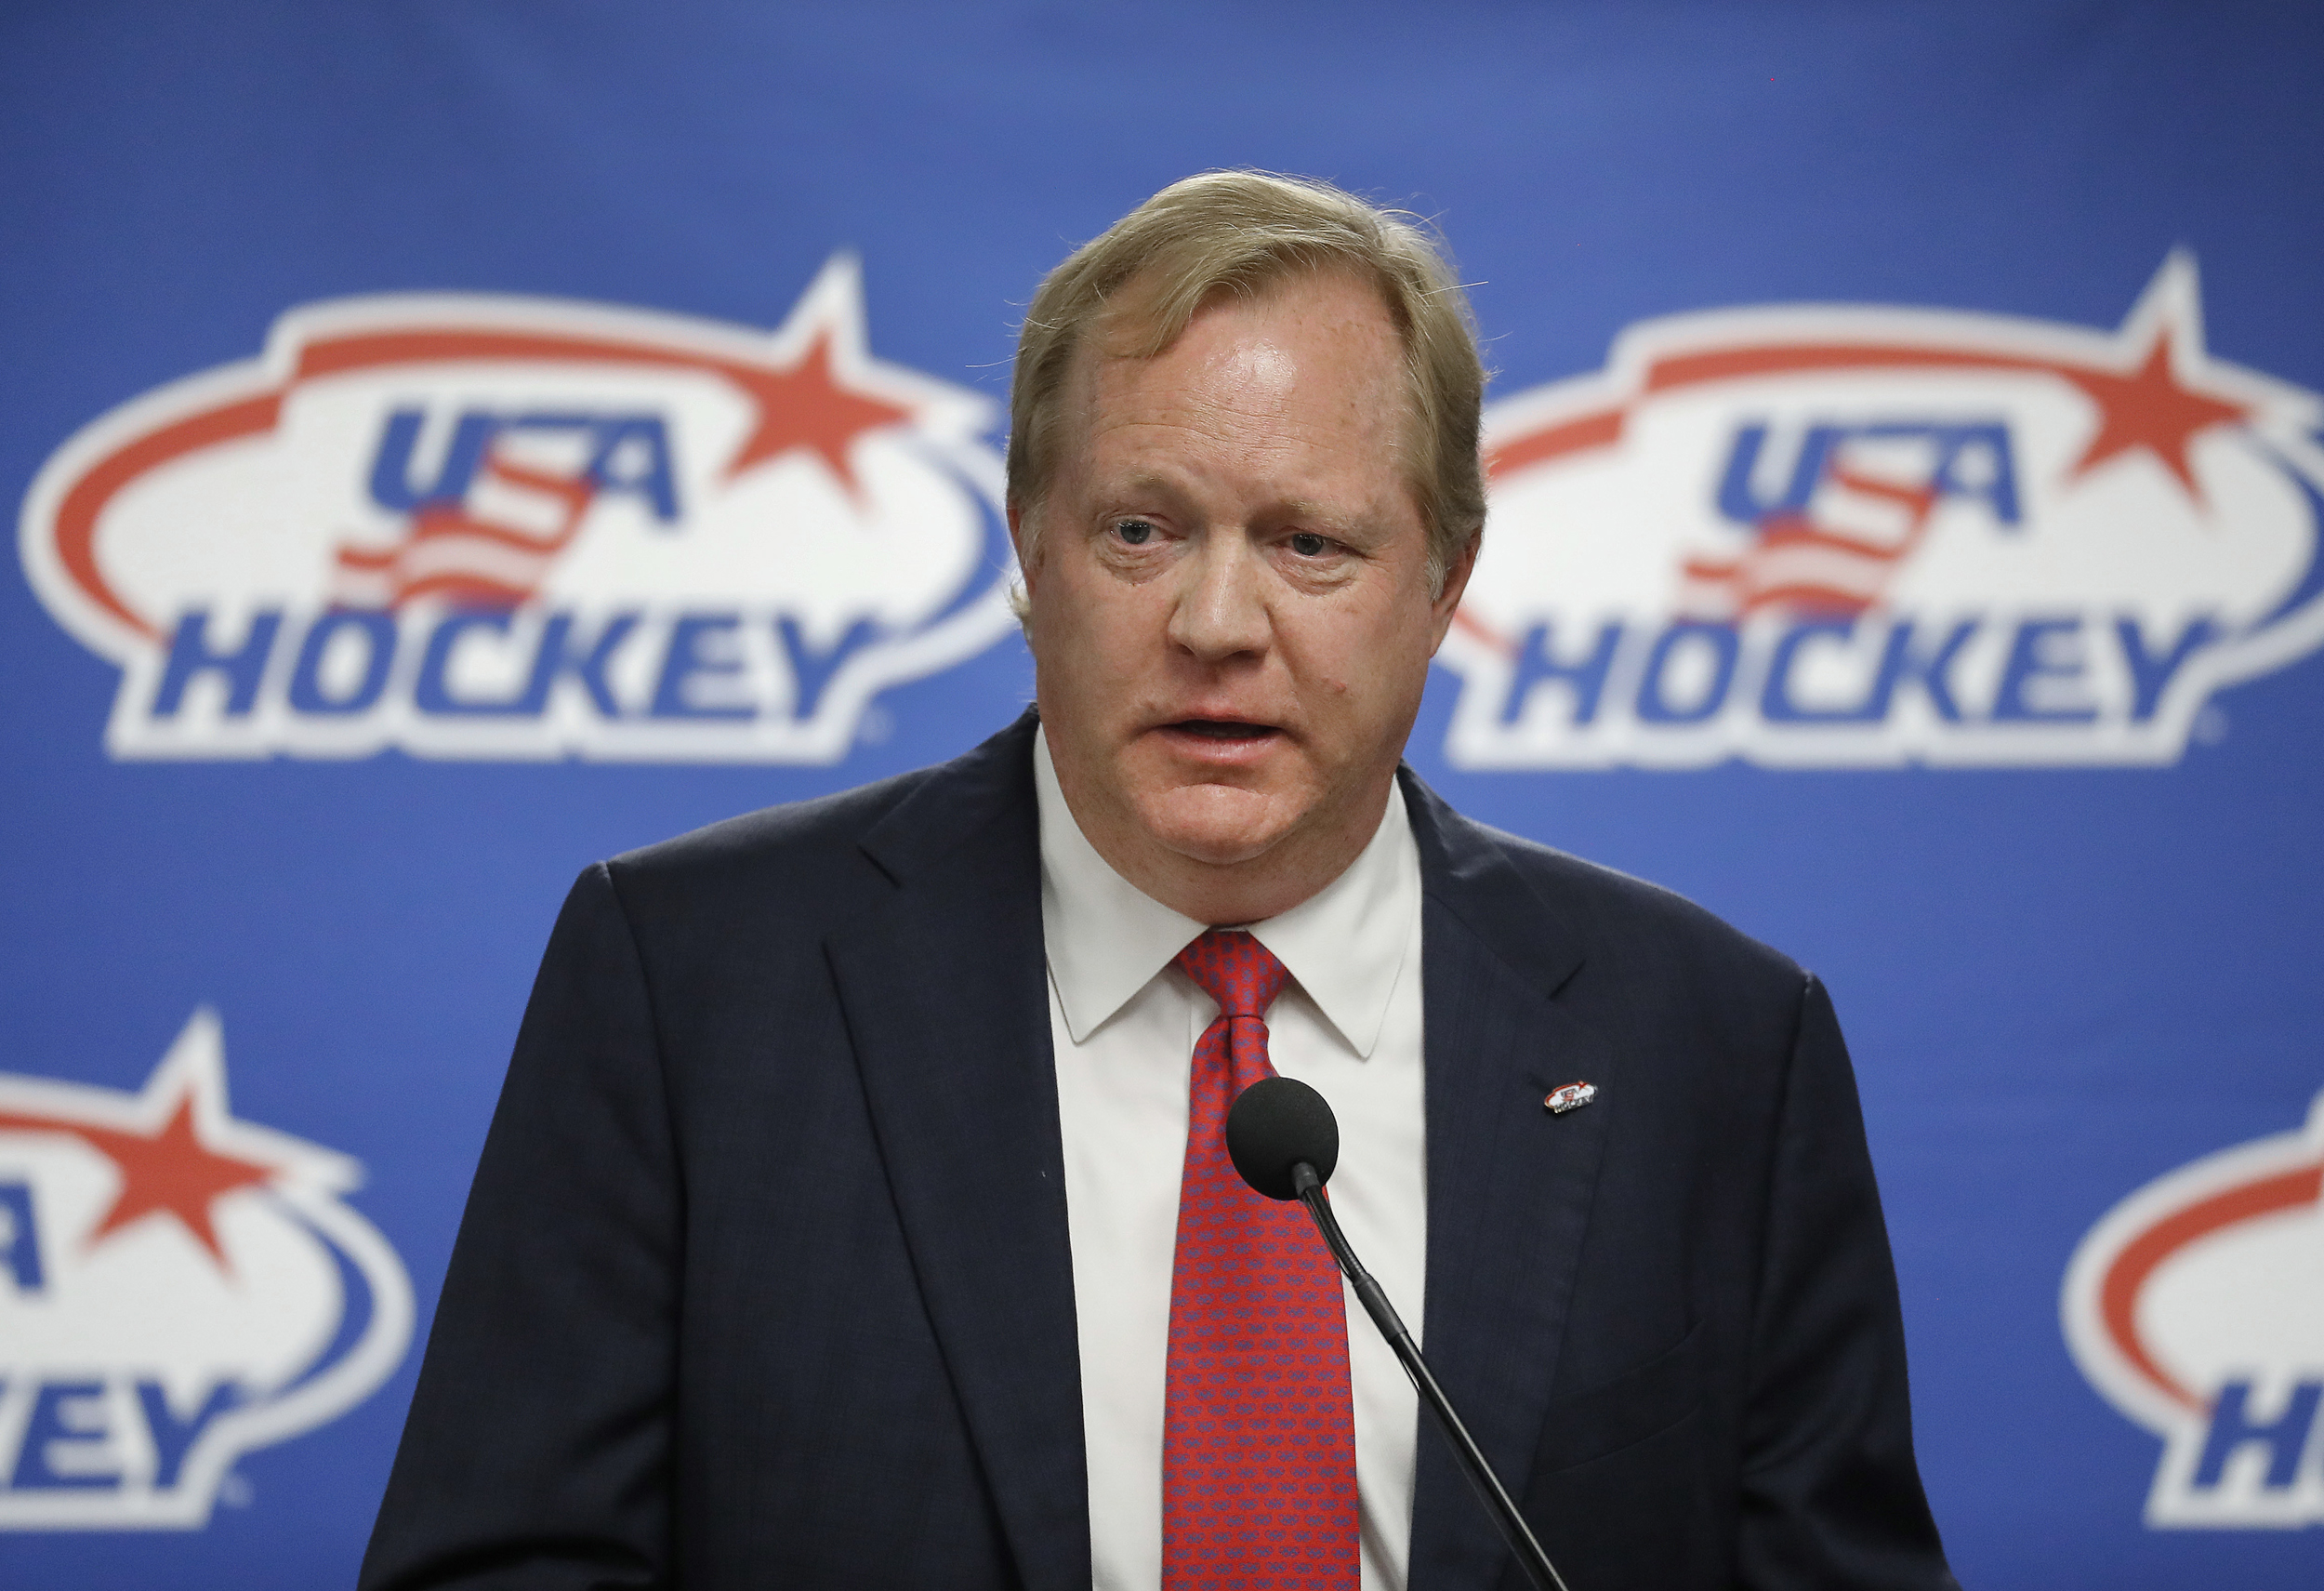 U.S. hockey GM dies unexpectedly at Colorado Springs home